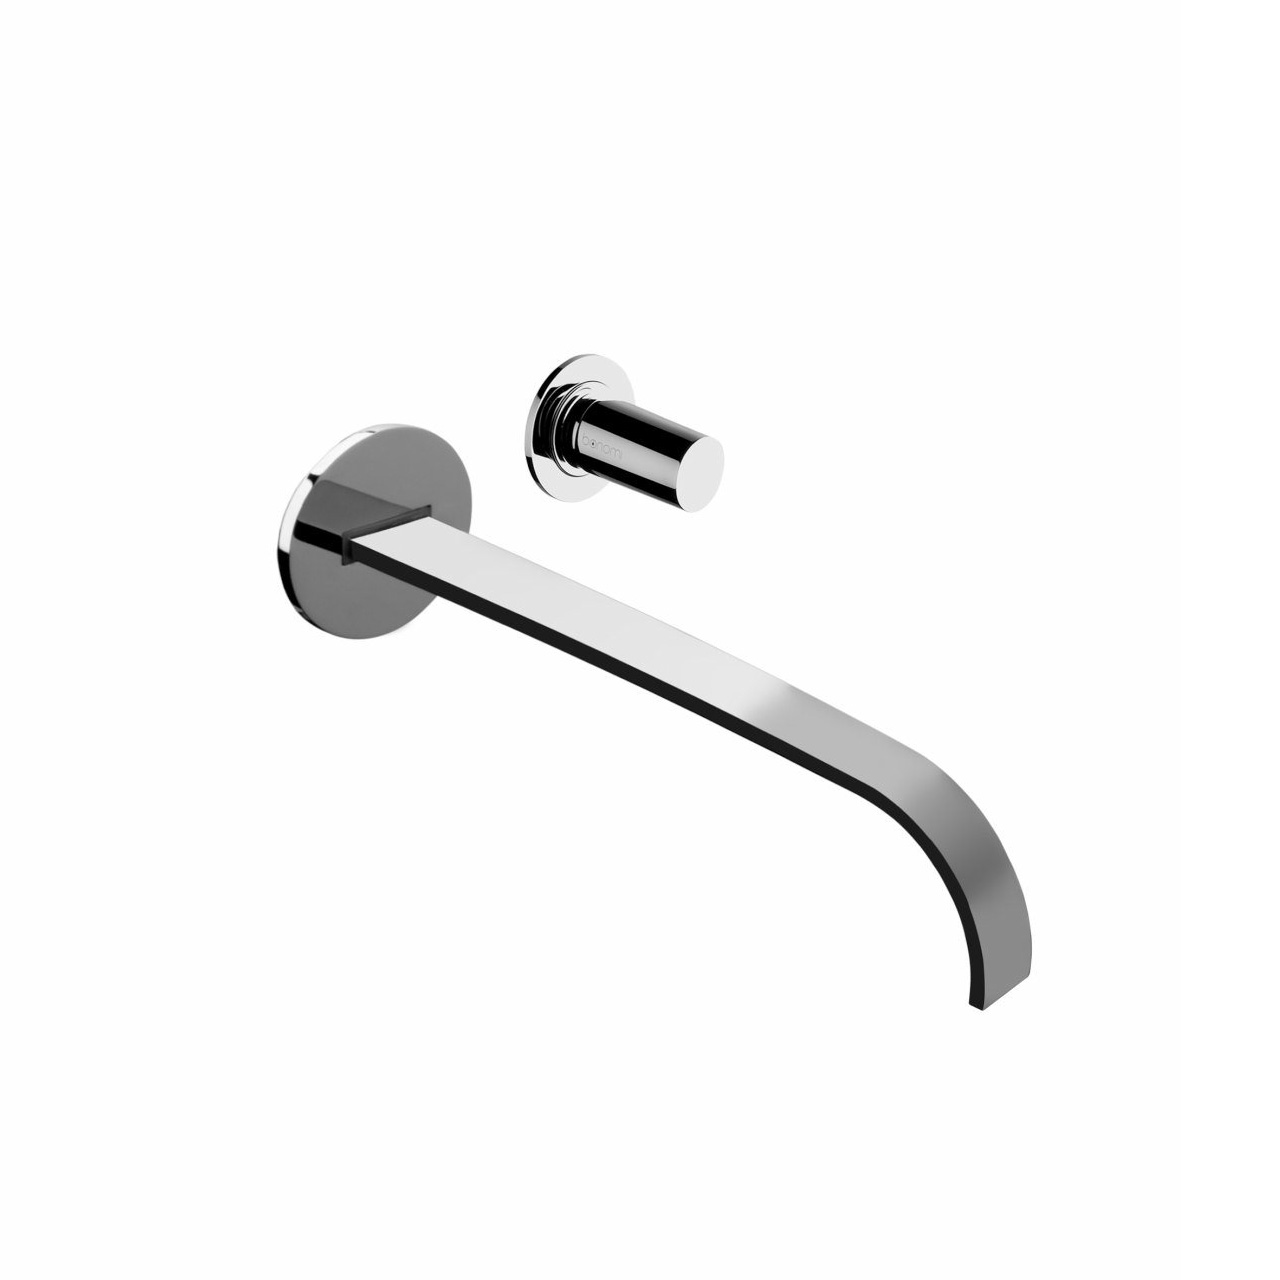 Bonomi Arco Wall Mounted Basin Mixer with 212mm Spout